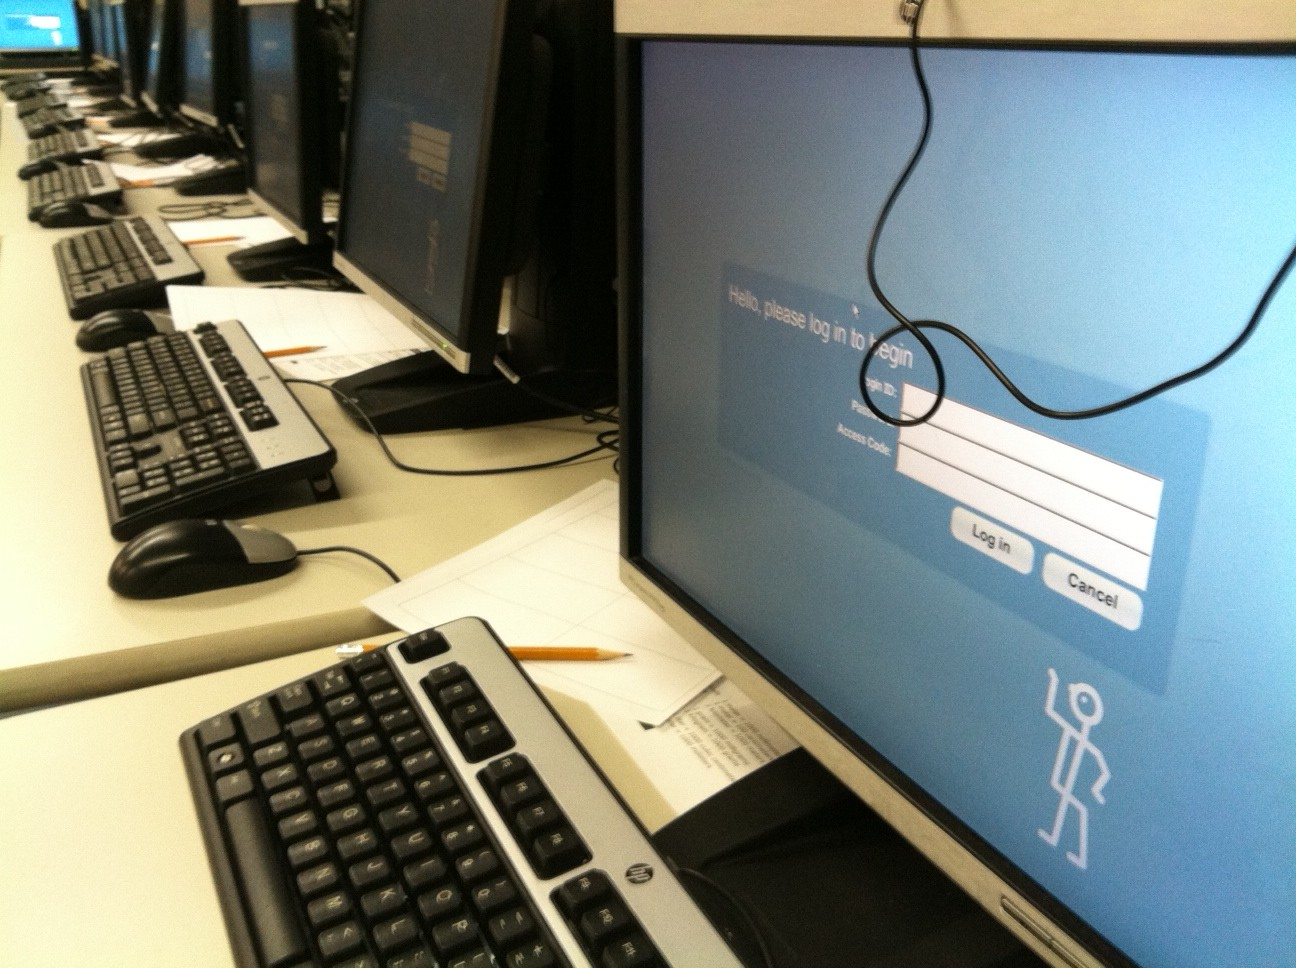 A login screen on a computer in an area set up for online ISTEP+ testing at Tecumseh Junior High School in Lafayette. The team charged with setting up more than 250 computers to administer assessments to rotating groups of more than 1,000 Tecumseh students worry Monday's glitches could slow down students taking exams on Tuesday.